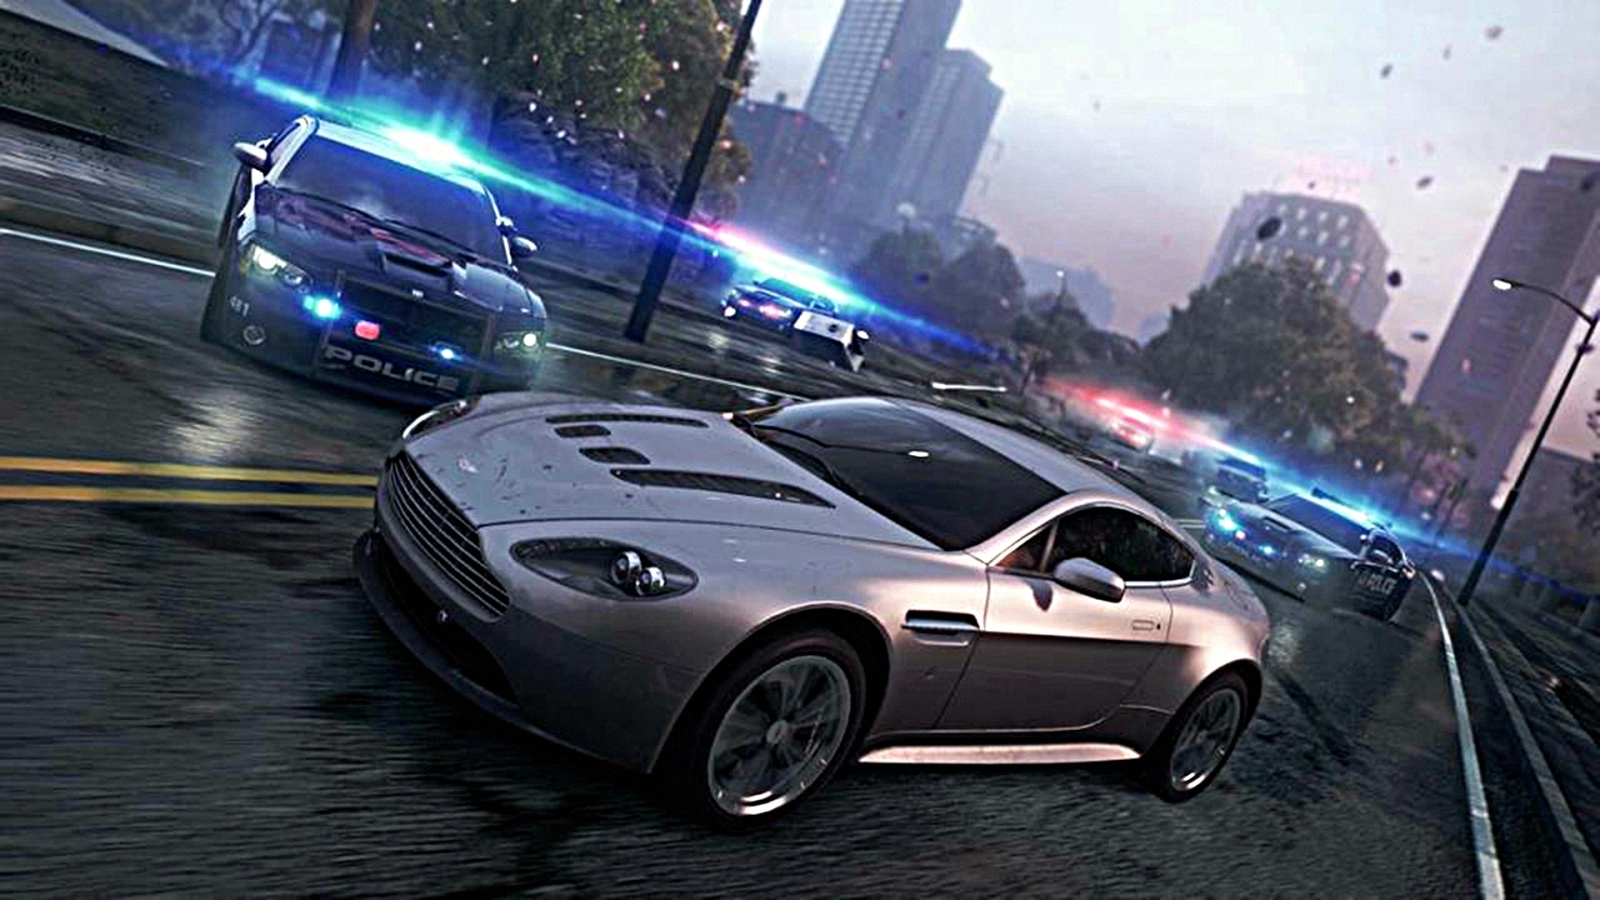 Hd Nfs Cars Wallpapers Aston Martin V12 Vantage Wallpaper And Background Image